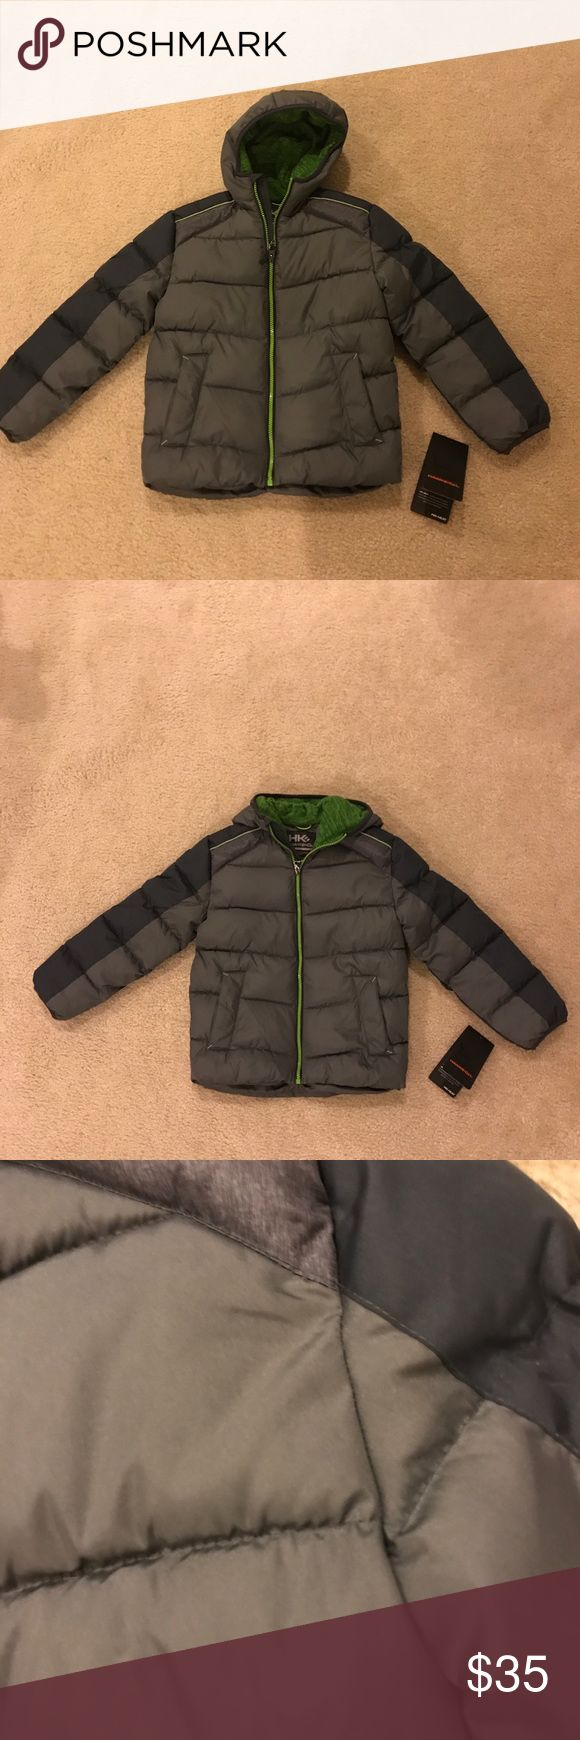 🎉Host Pick🎉NWT Boys Winter Jacket 7 New With Tags boys size 7 winter coat Gray with green accents. Smoke and pet free home Hawke & Co Jackets & Coats Puffers